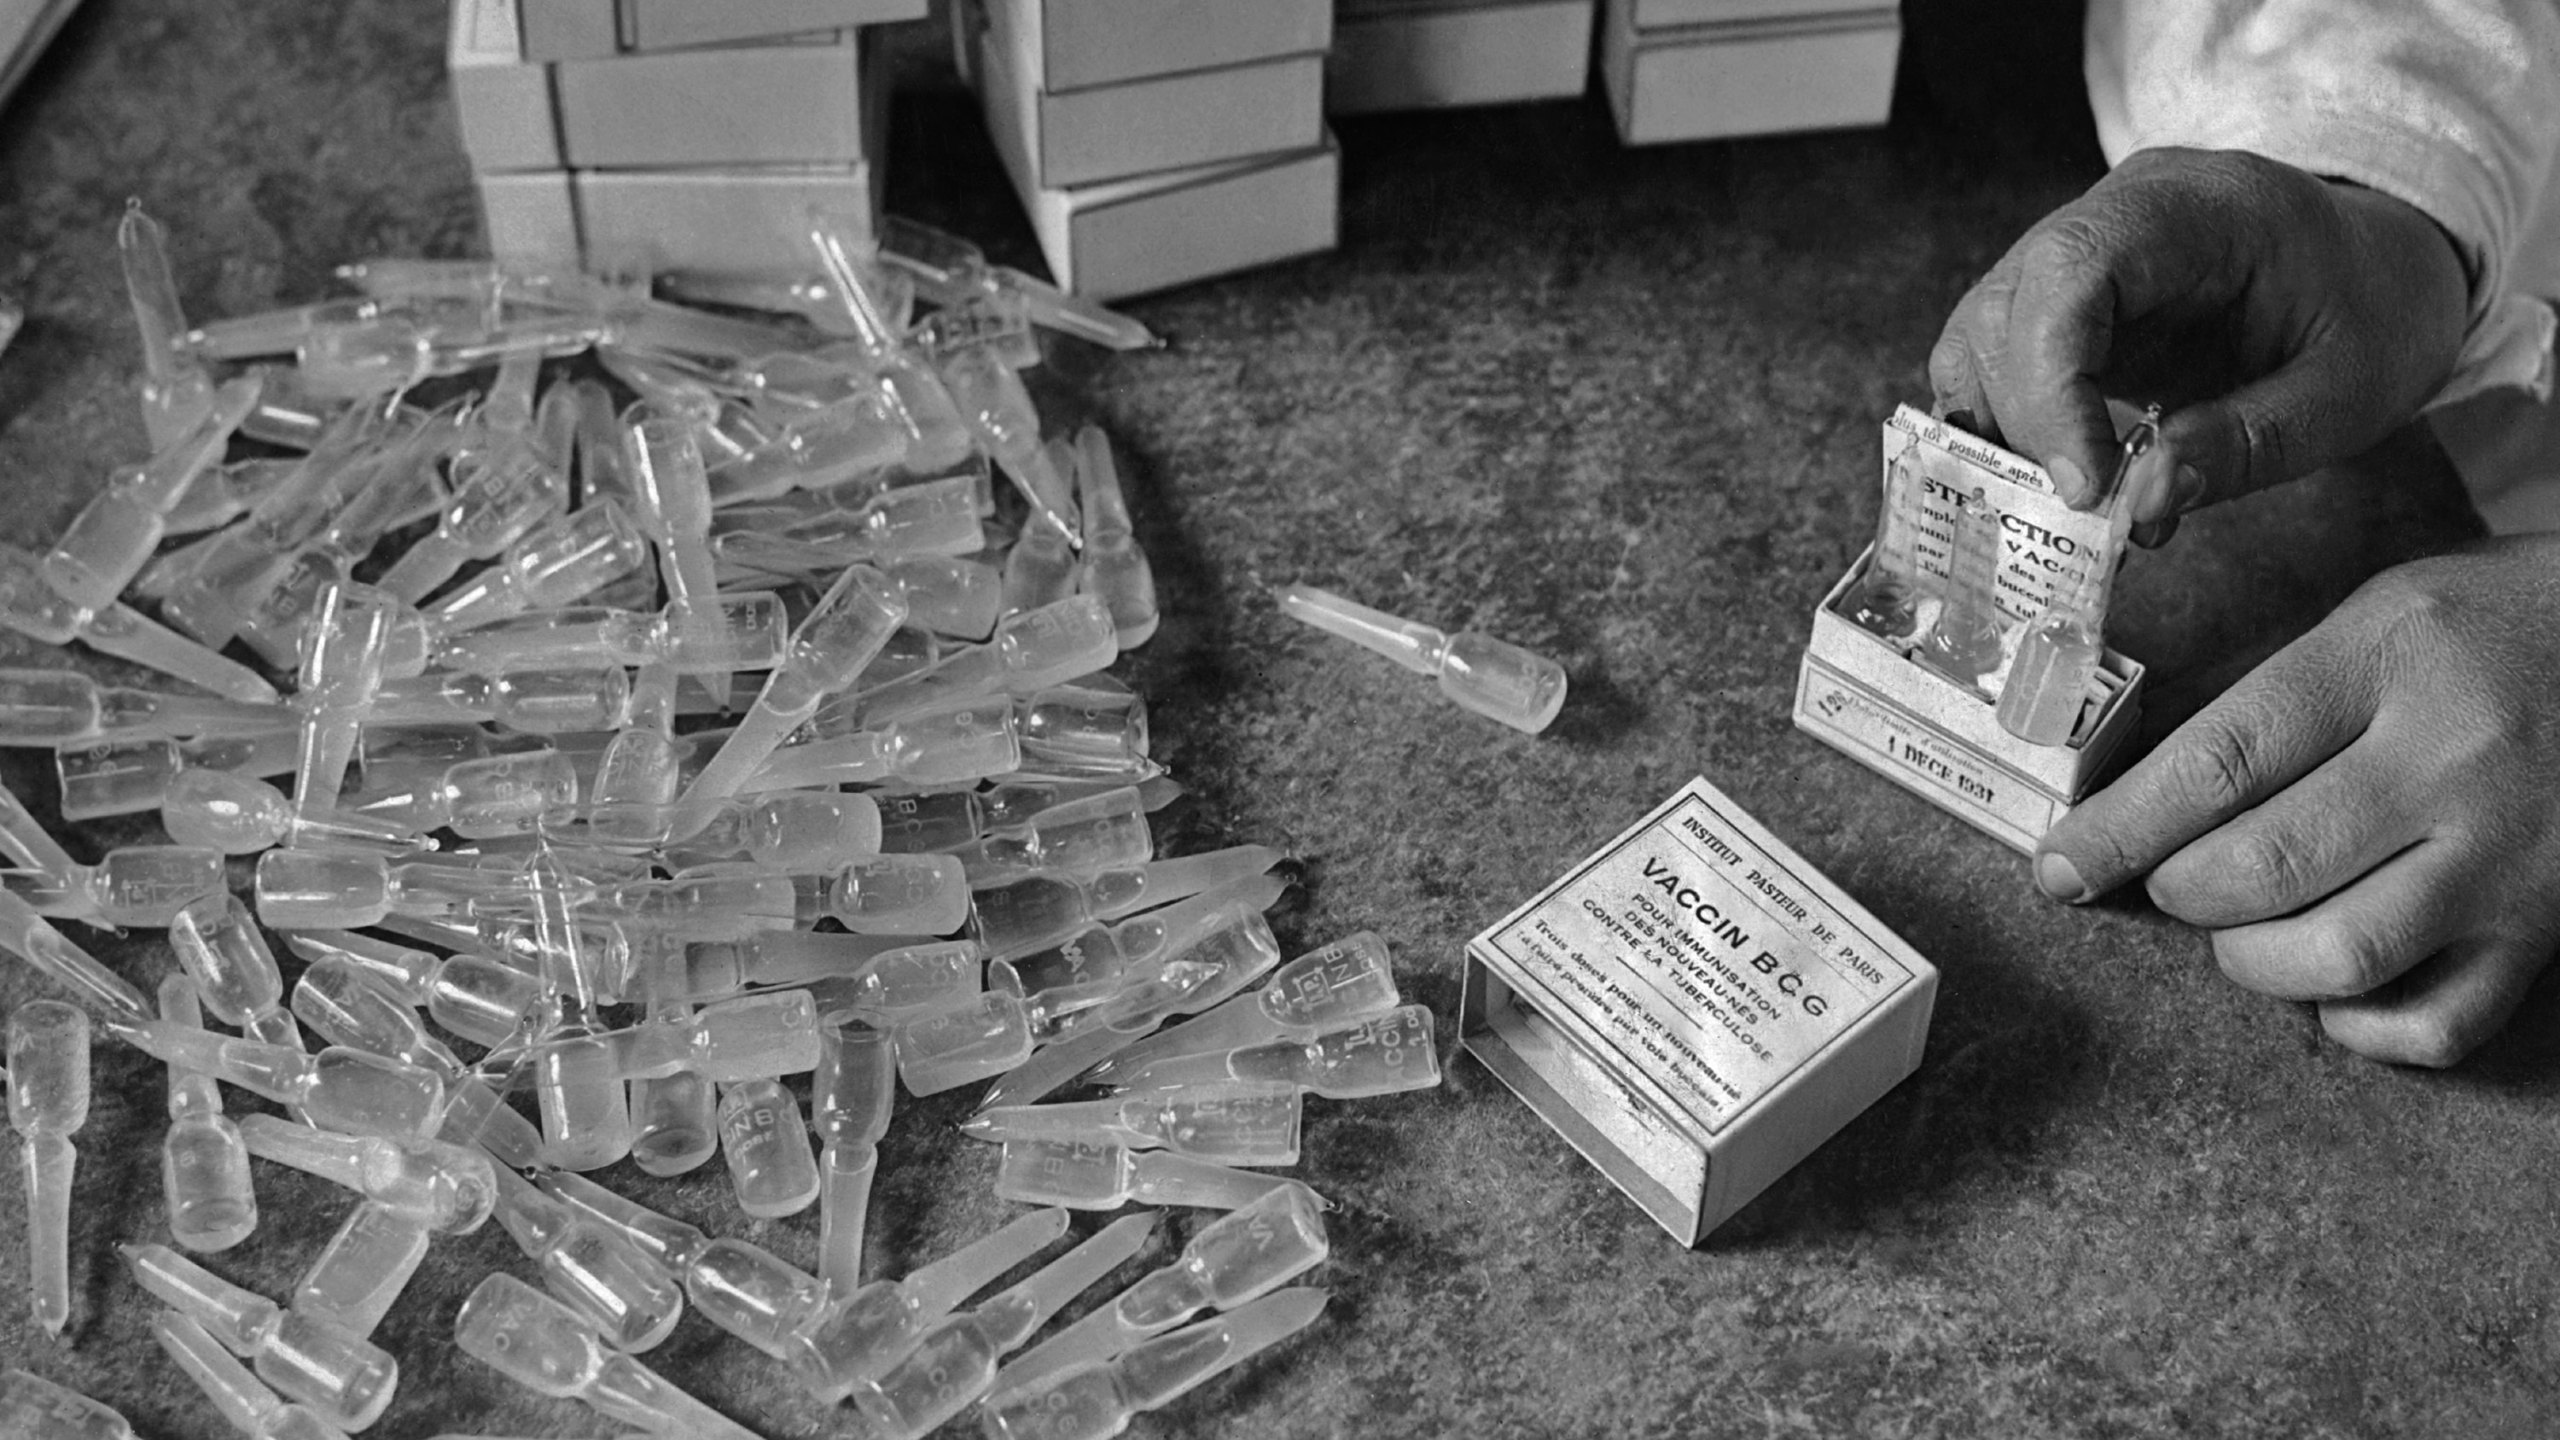 Packing ampoules of the BCG (Bacillus Calmette-GuŽrin) vaccine for tuberculosis developed by the Pasteur Institute in Paris, France in 1931. (Photo by FPG/Getty Images)